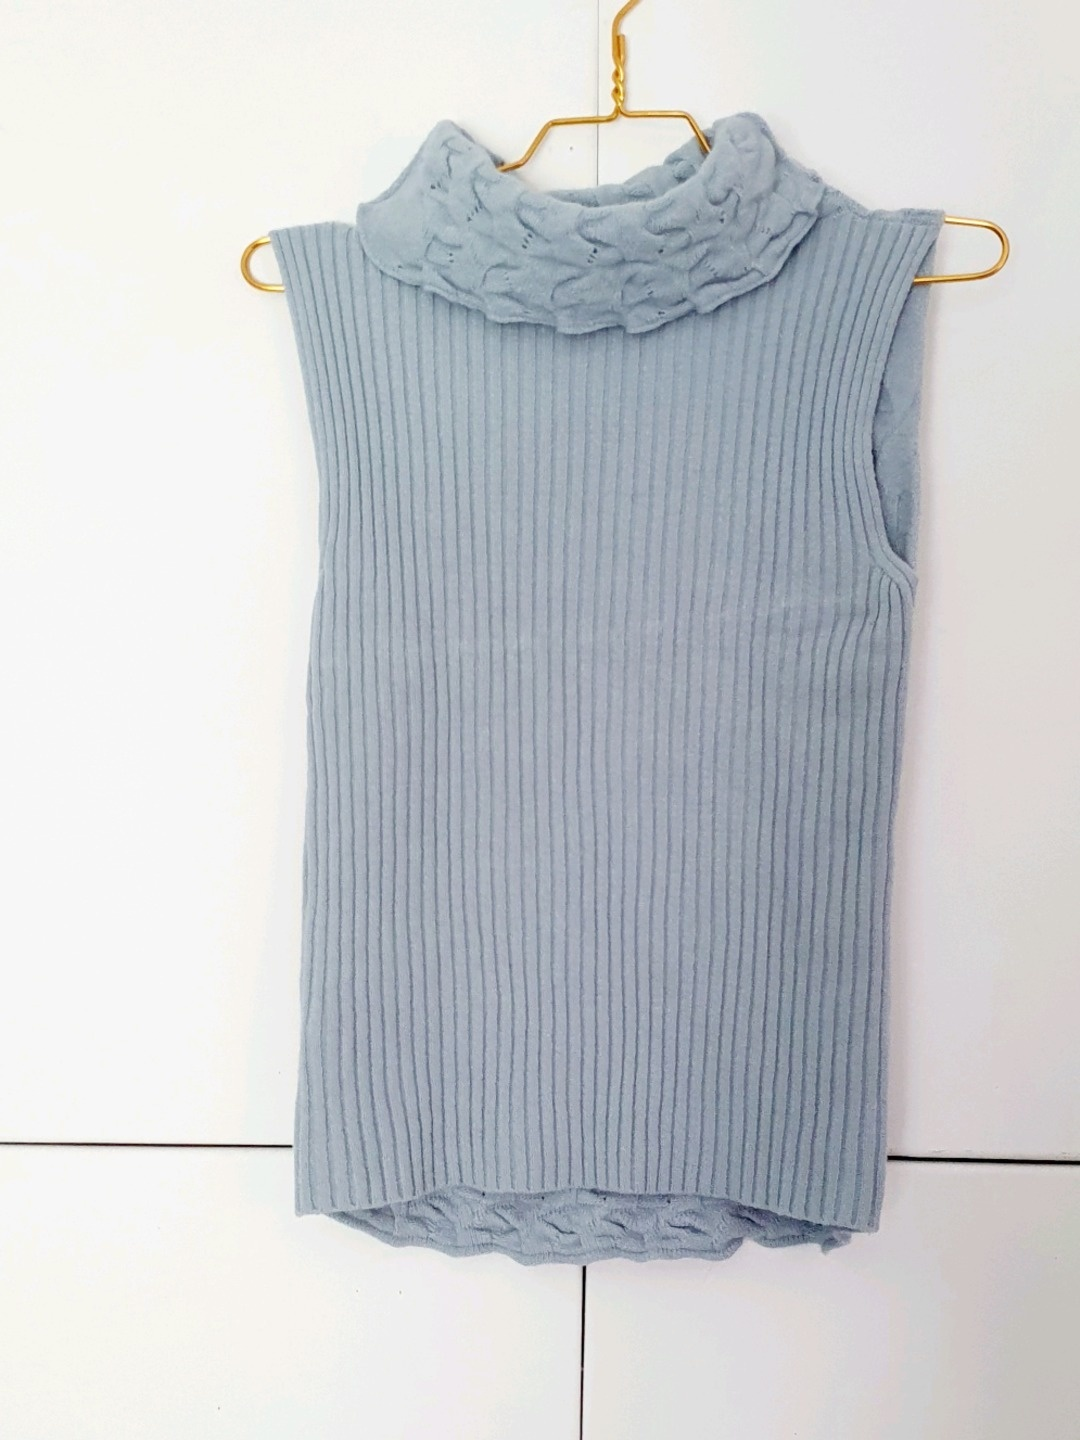 Women's jumpers & cardigans - EMPORIO ARMANI photo 2